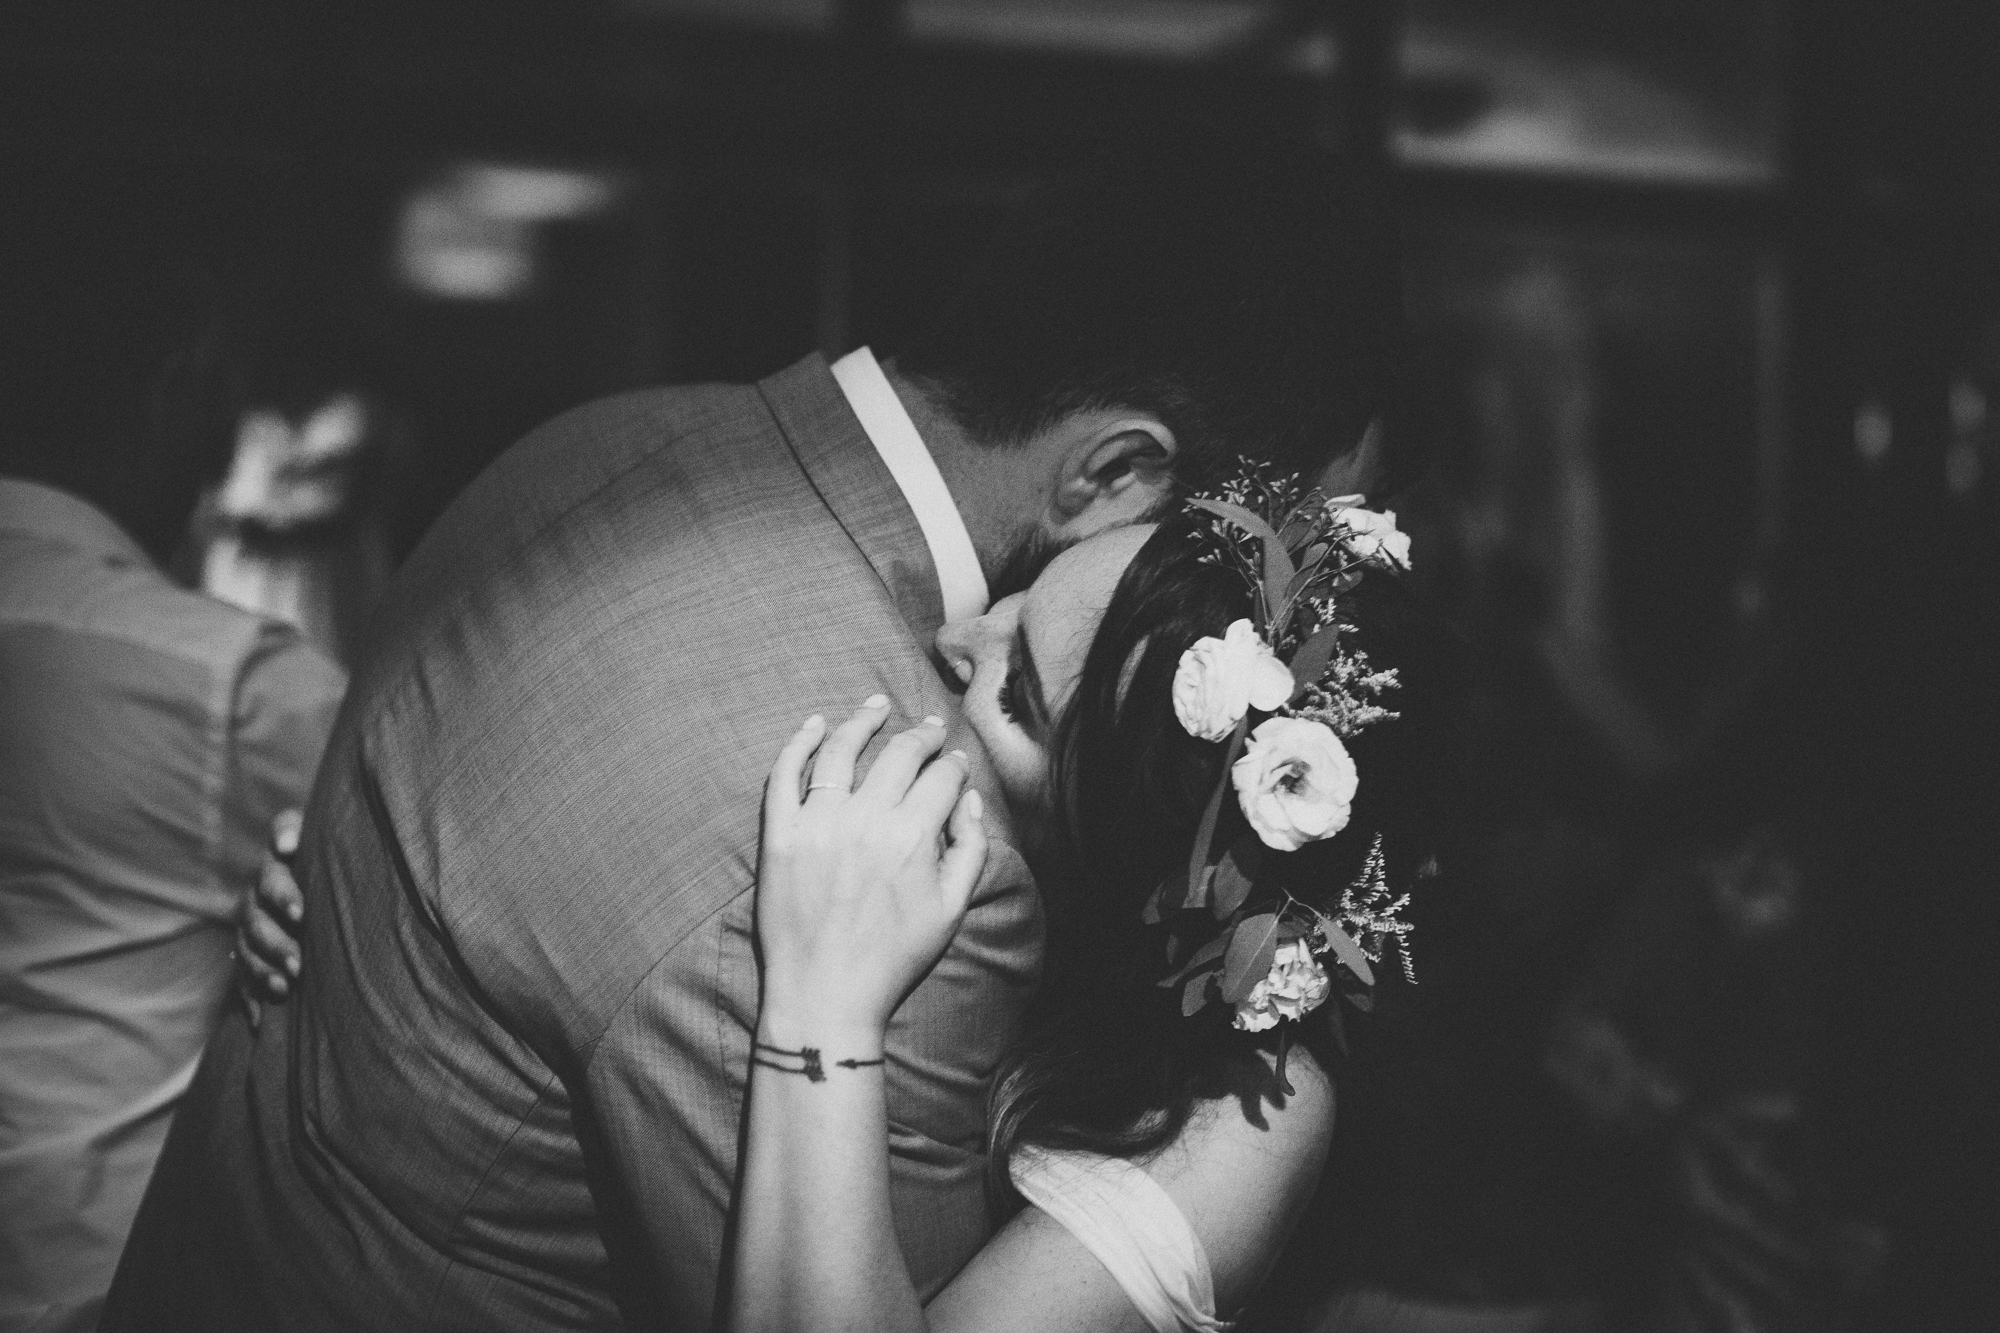 bride and groom cuddle during dancing at Spanish wedding (black and white)